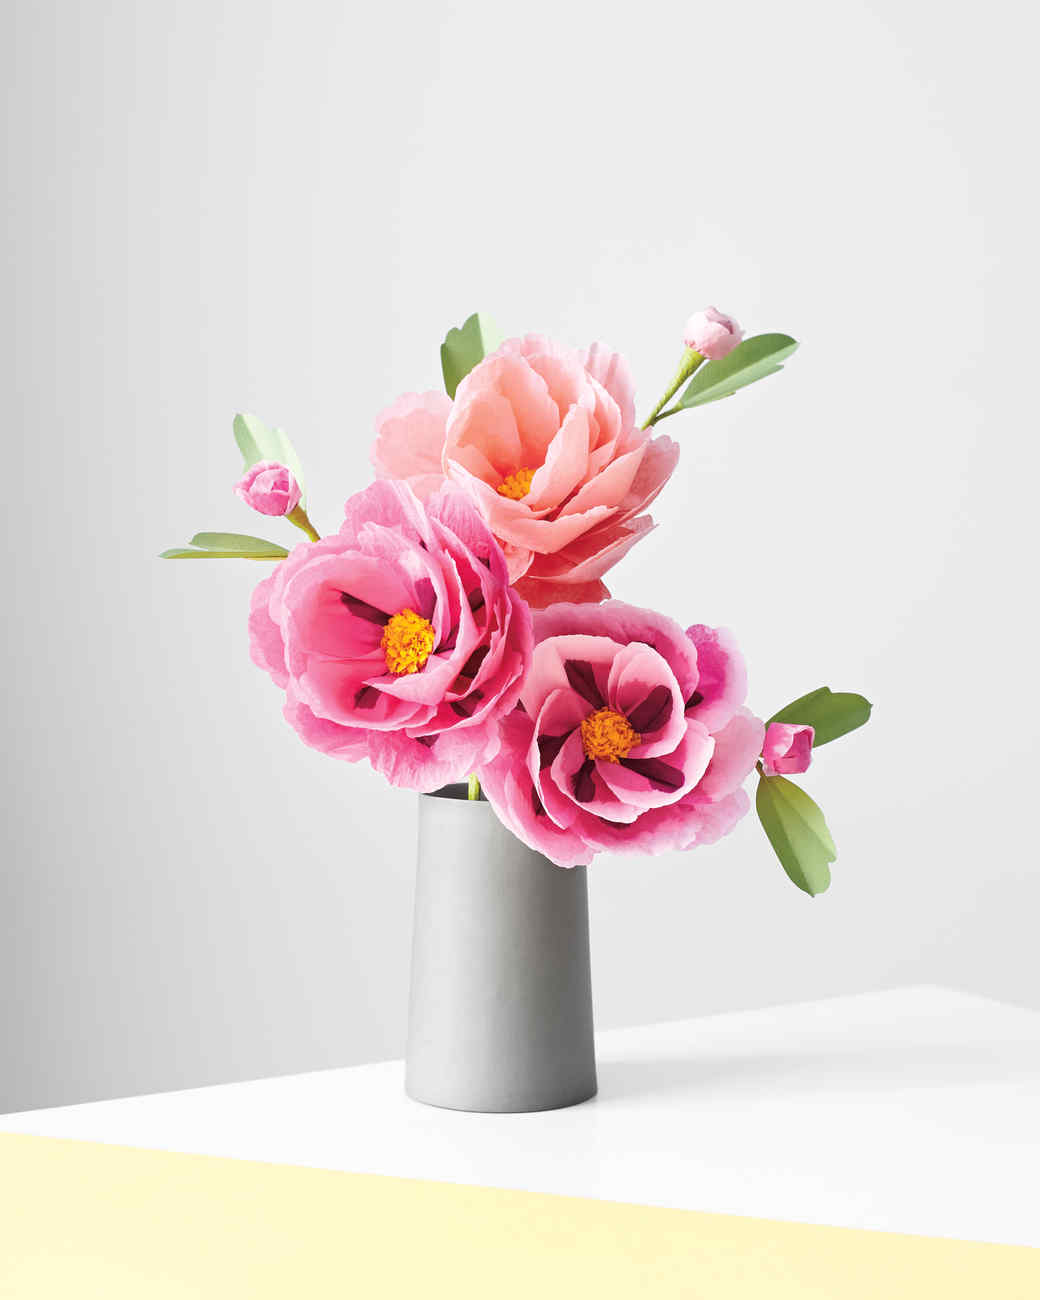 how to make tissue paper flowers for wedding Diy tissue paper flowers march 28,  you might find yourself making tissue paper flowers for yourself even though your not planning a wedding tissue paper flowers tutorial making tissue.